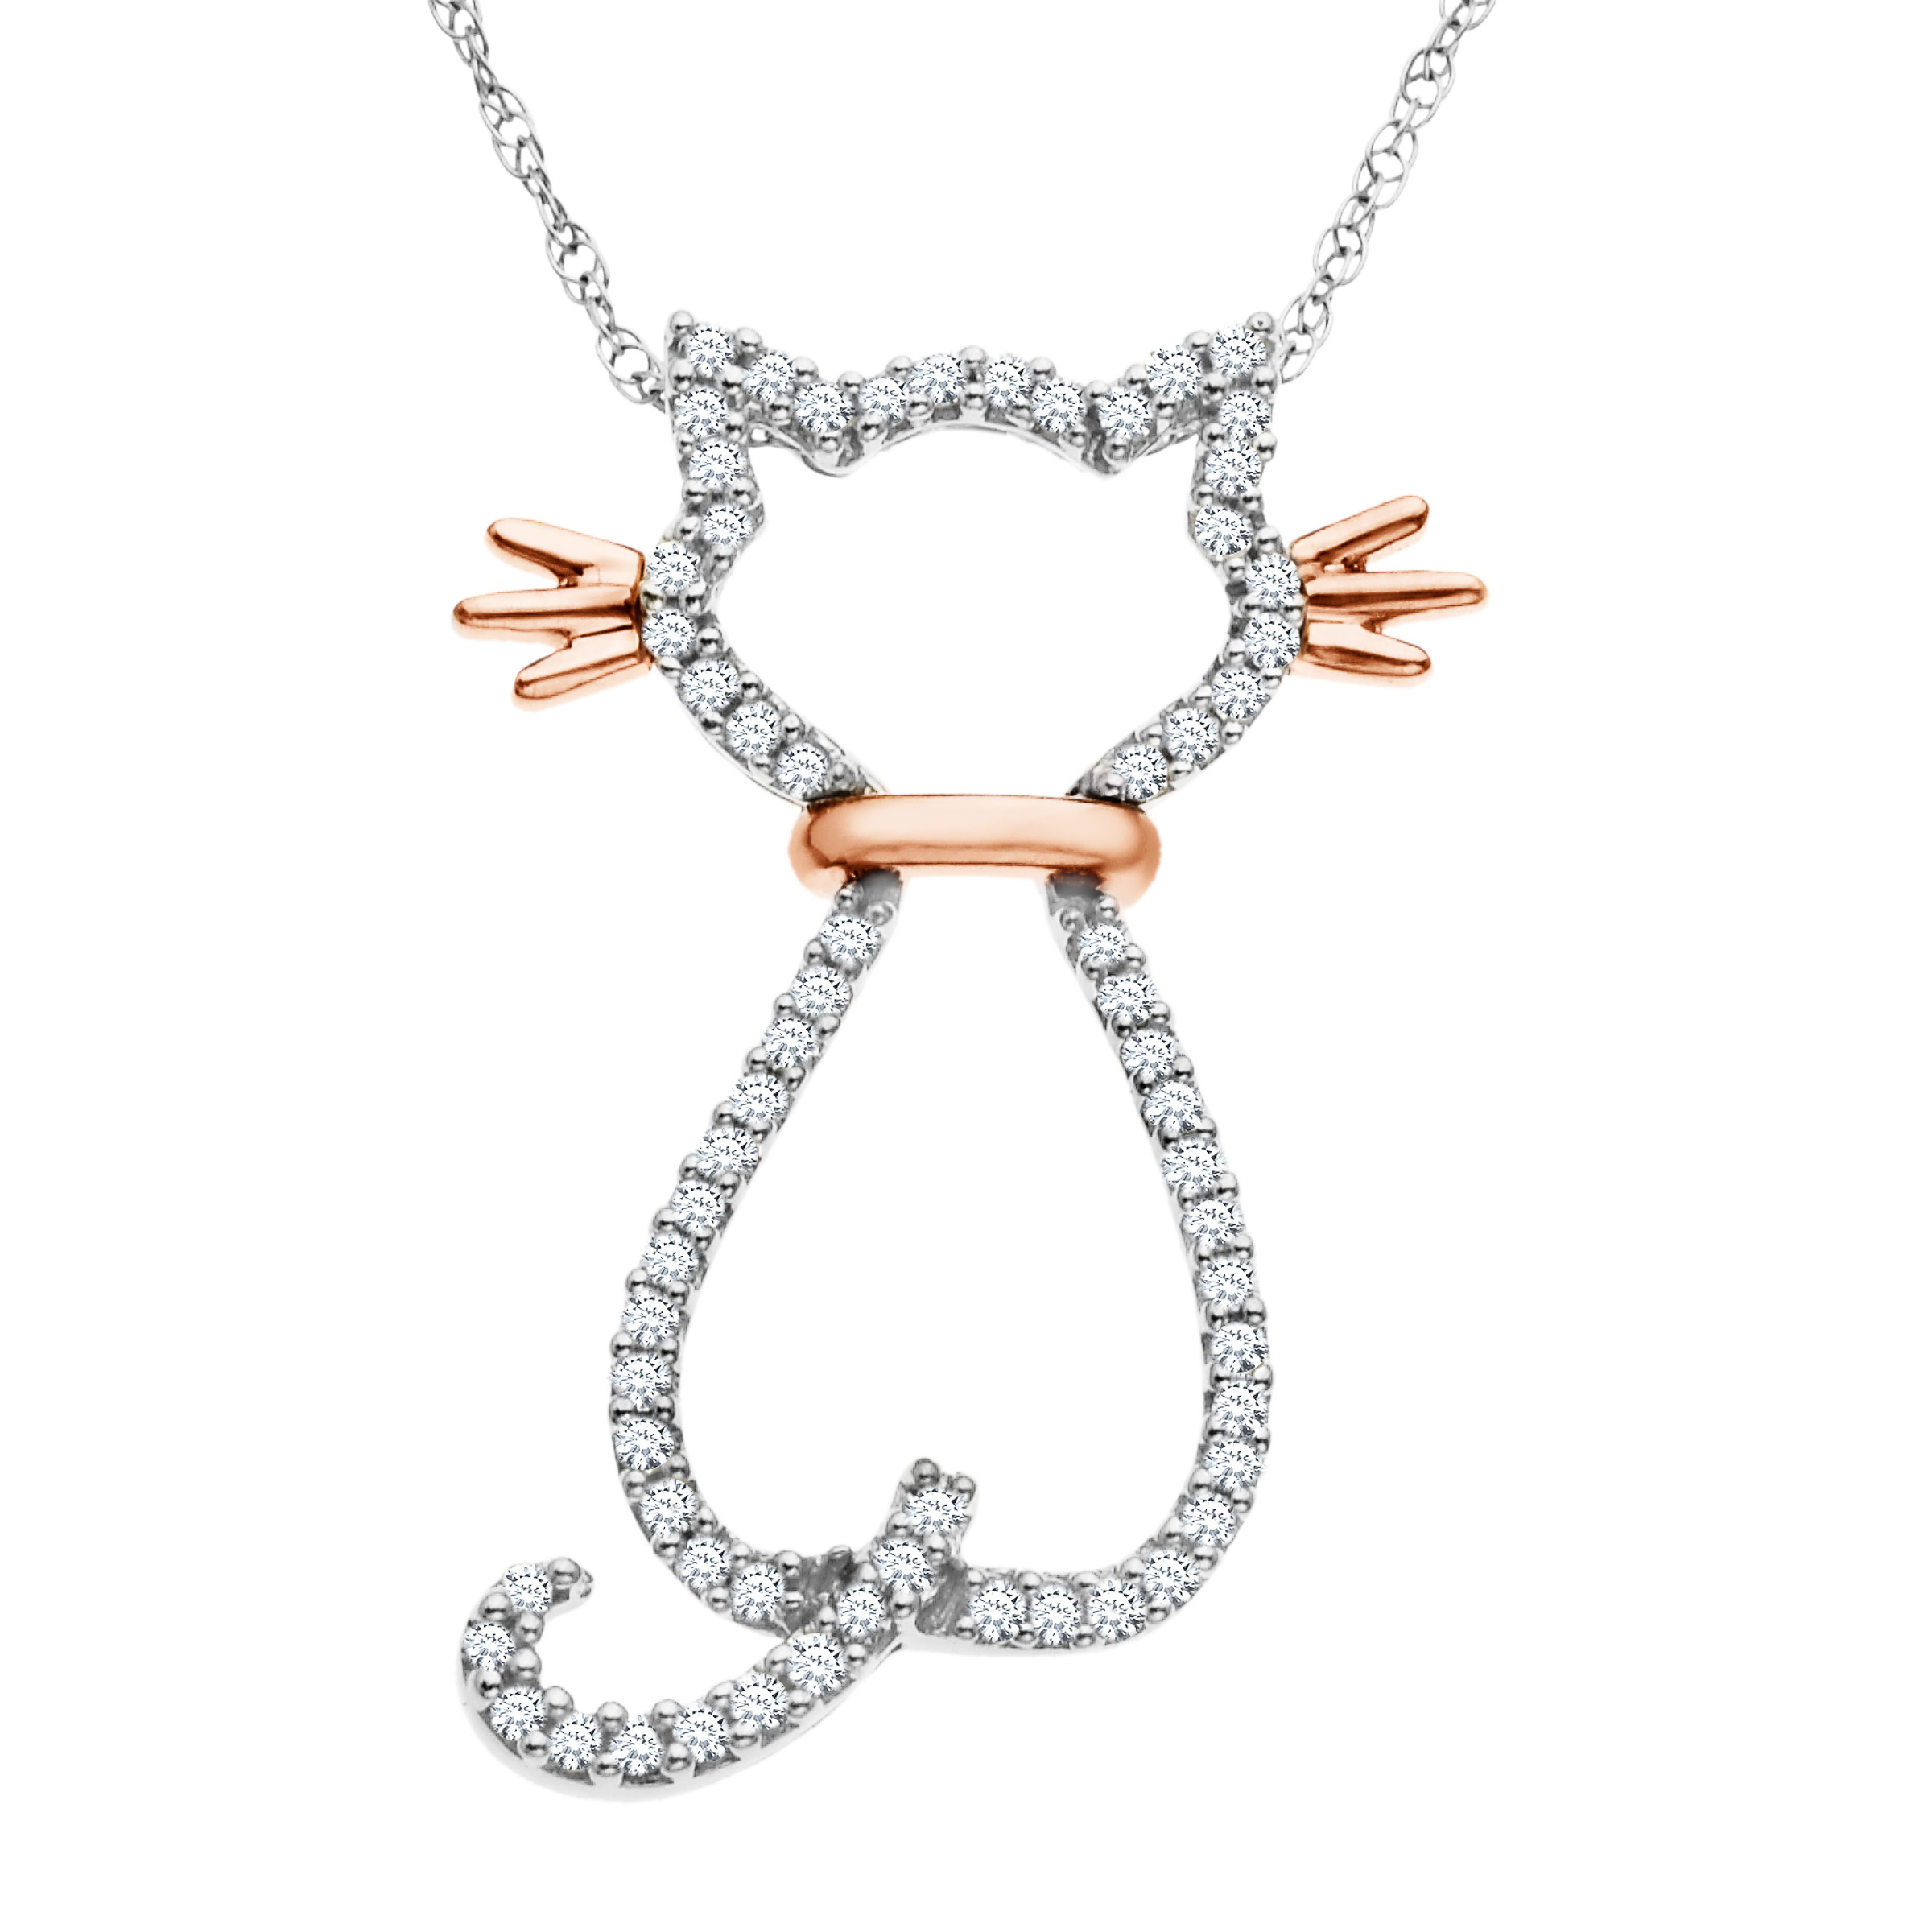 1 5 ct Diamond Cat Pendant Necklace in 14kt Rose Gold by Richline Group